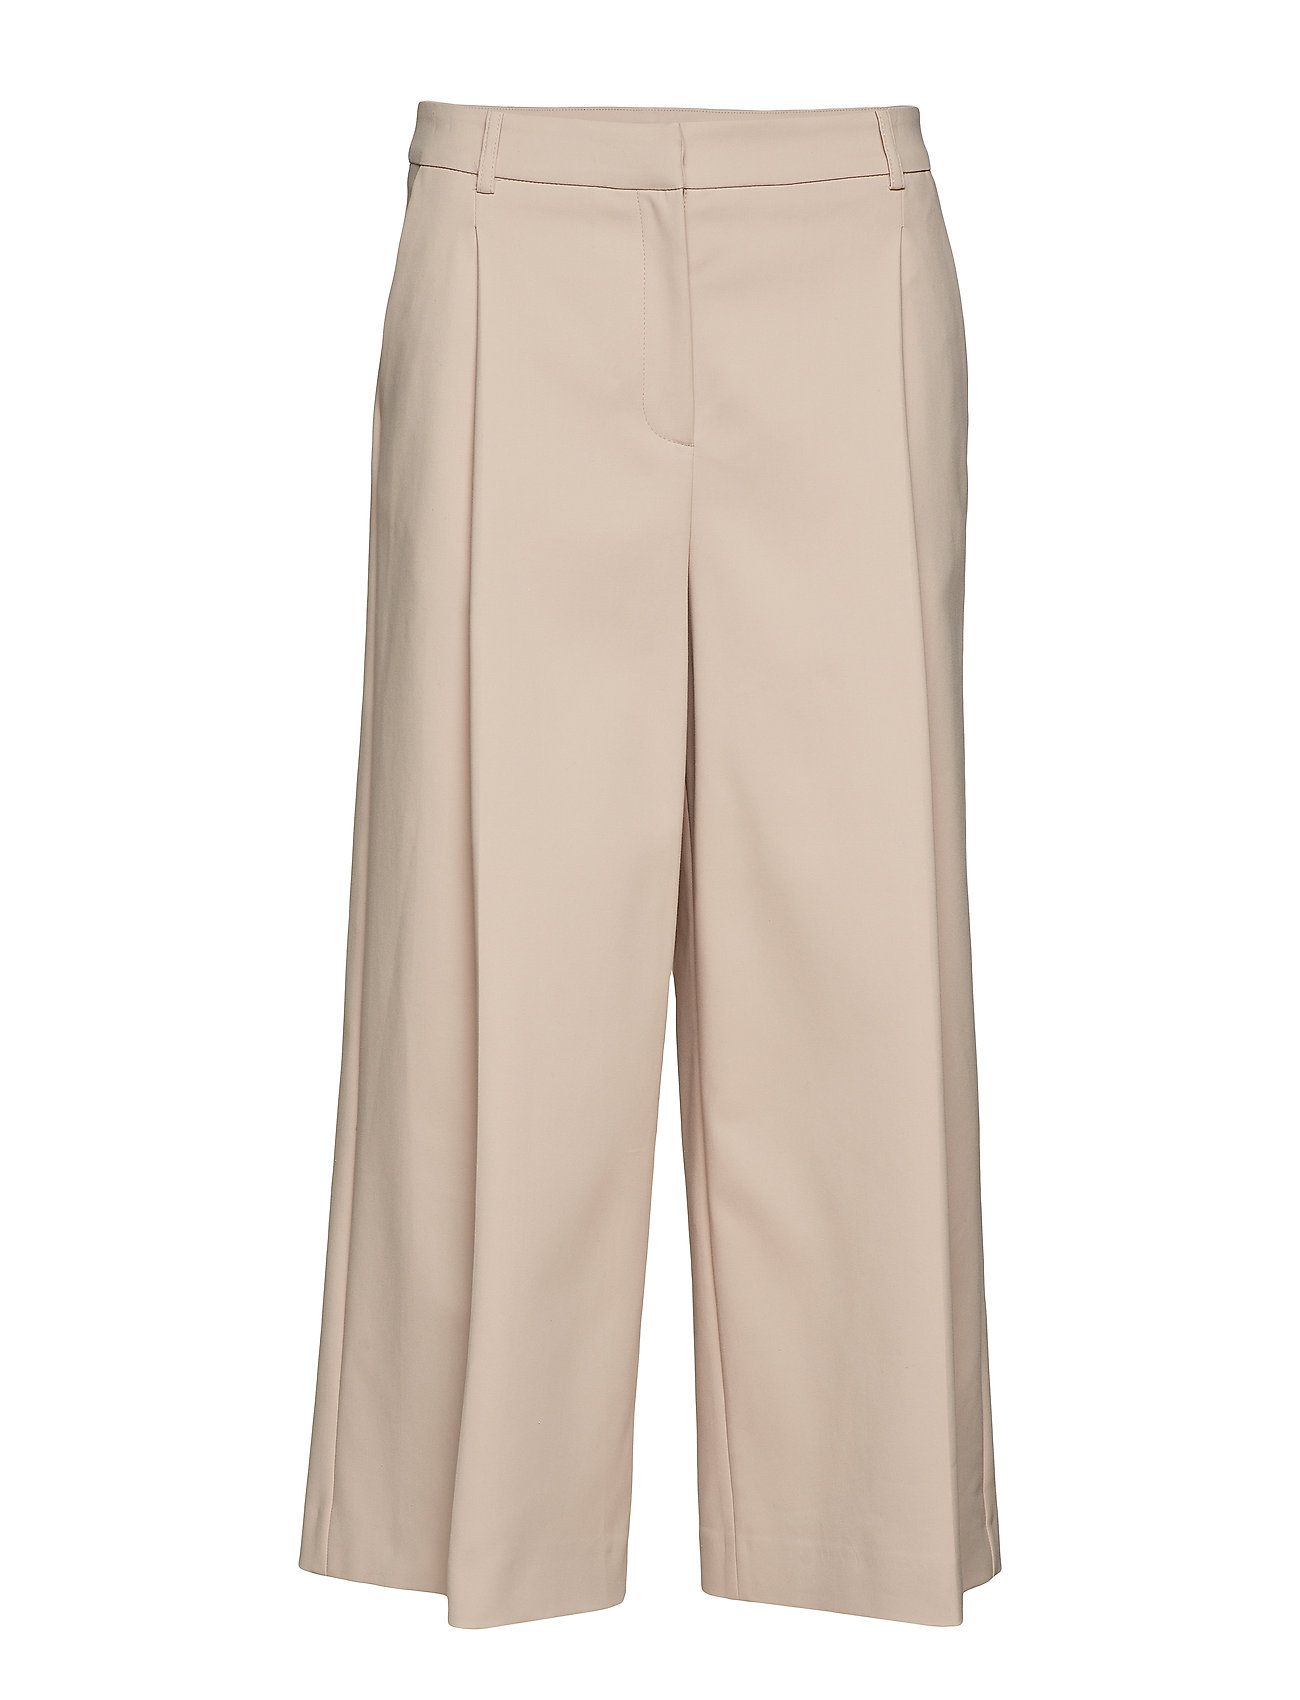 Andiata LUCAN WIDE TROUSERS - POWDER PINK